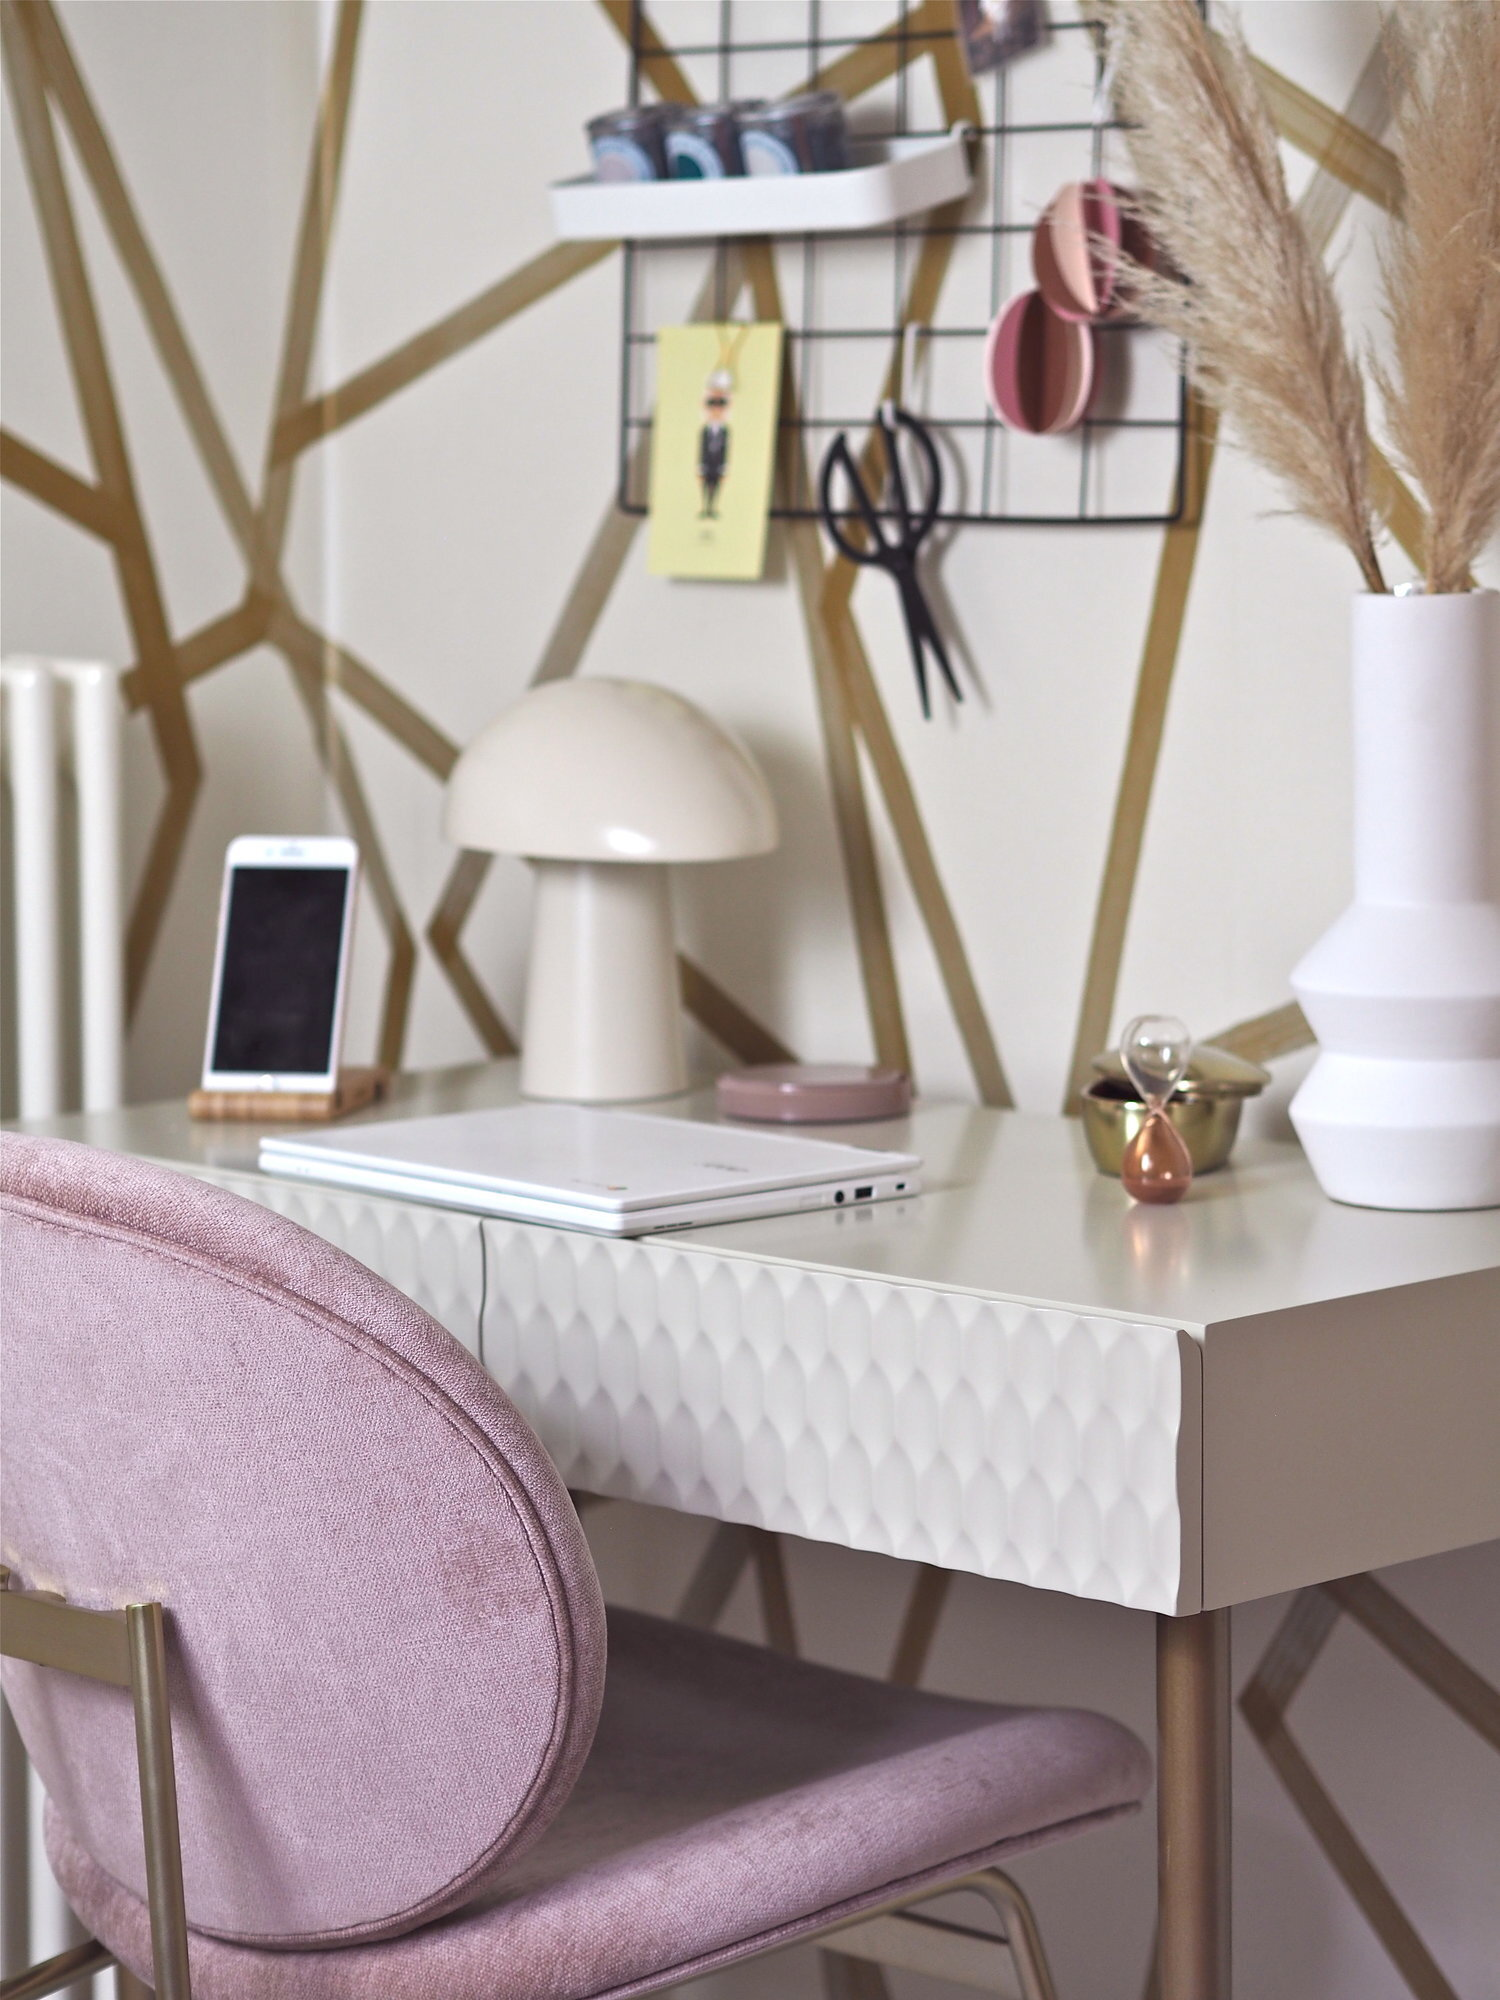 Working From Home 5 Compact Desk Designs For Small Spaces Melanie Lissack Interiors